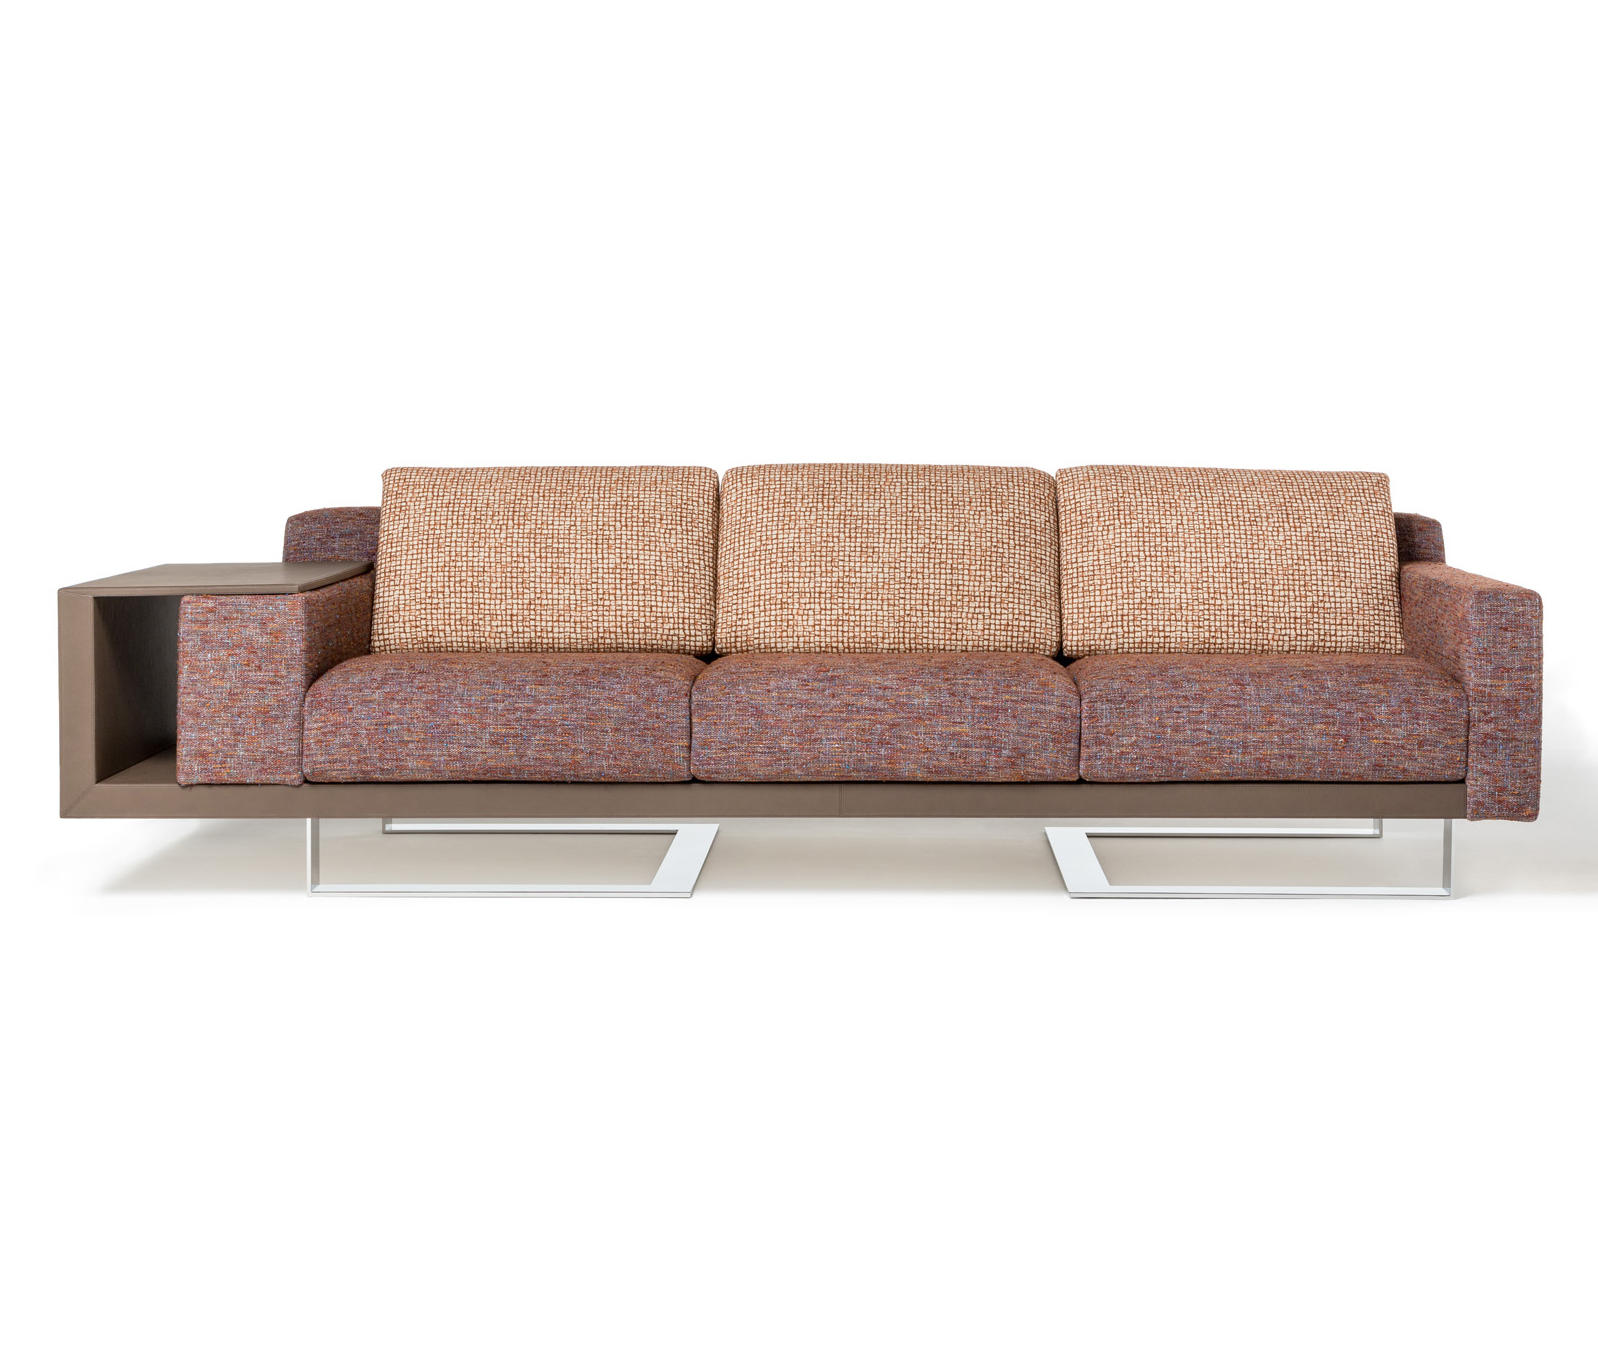 CORTE NOVA SOFA 3-SEAT - Lounge sofas from Rubelli | Architonic